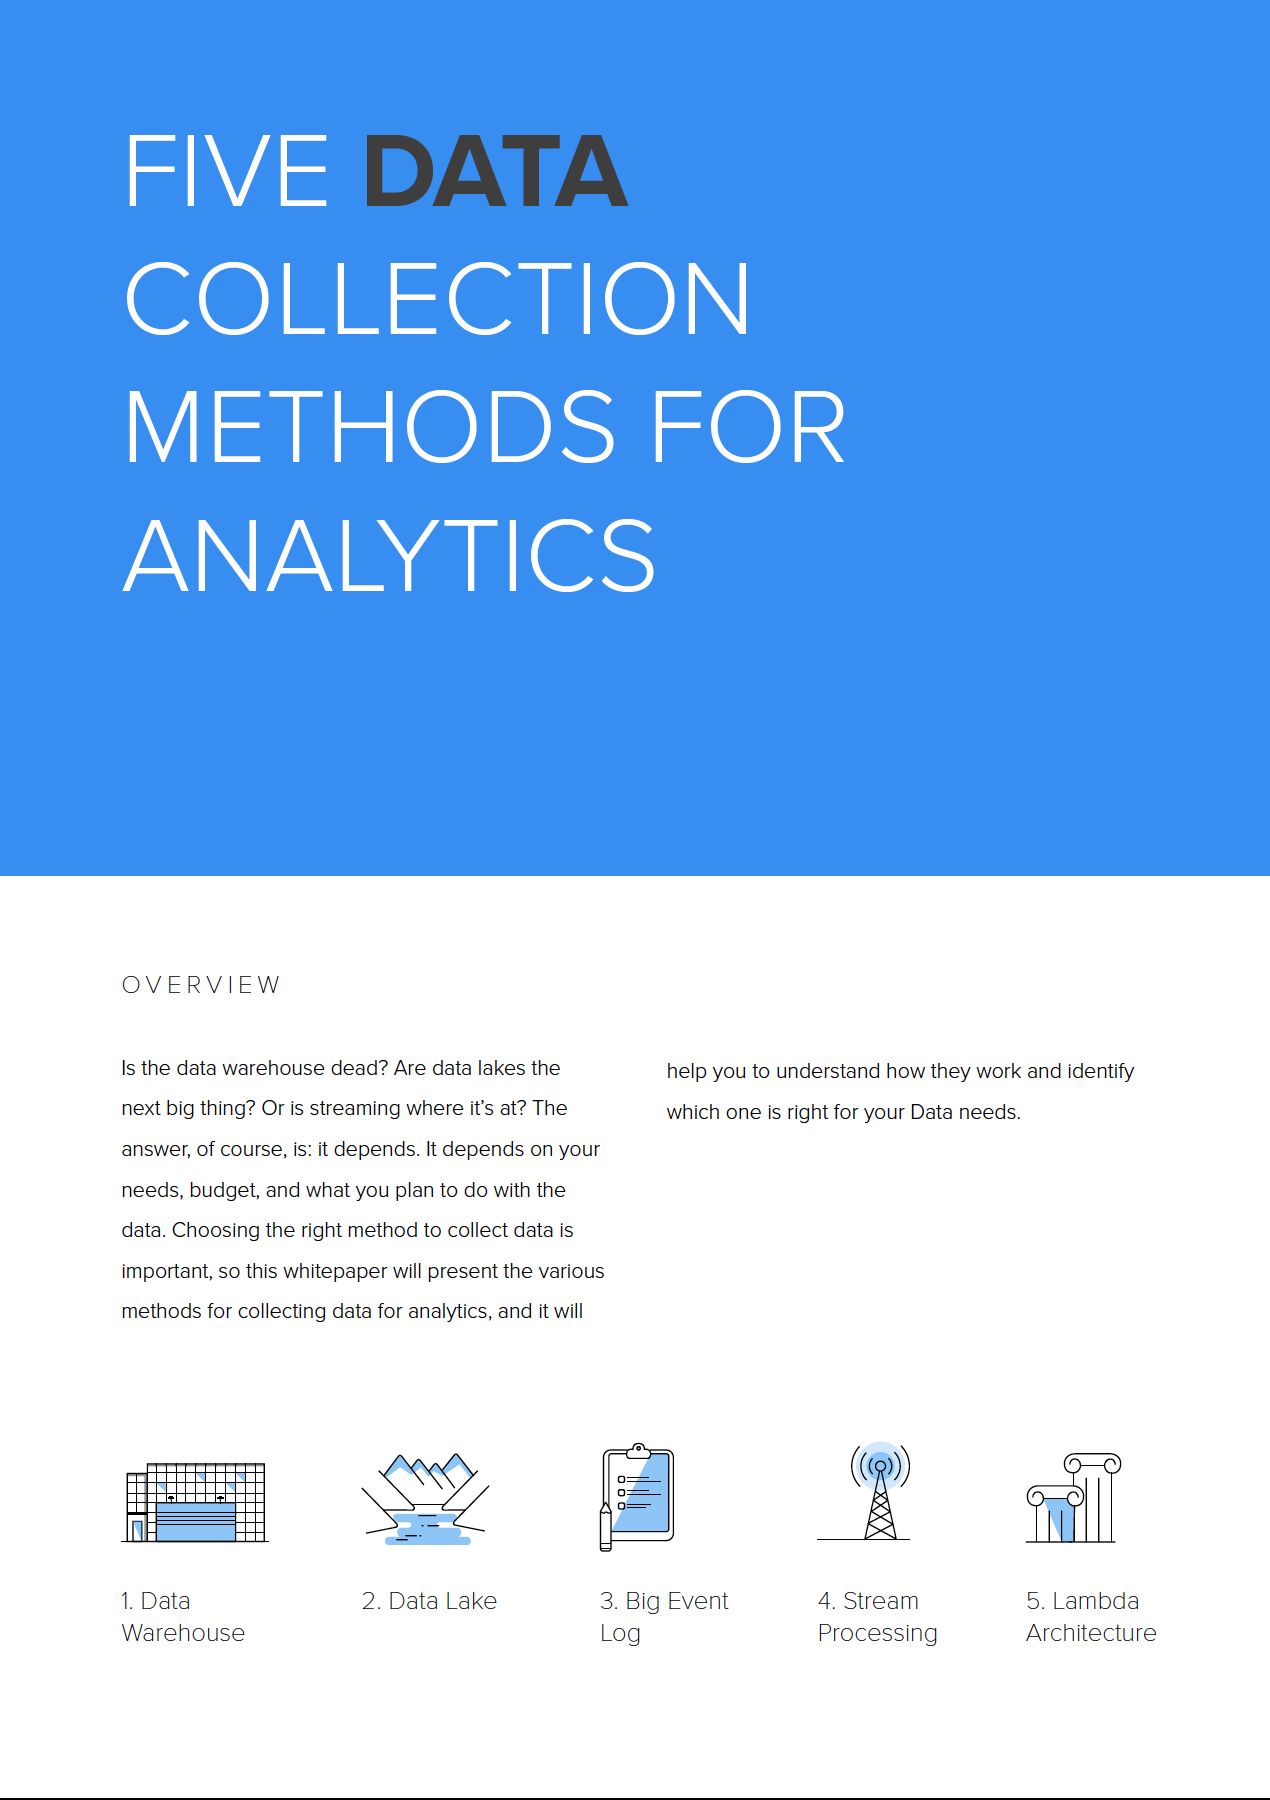 5 Data Collection Methods for Analytics